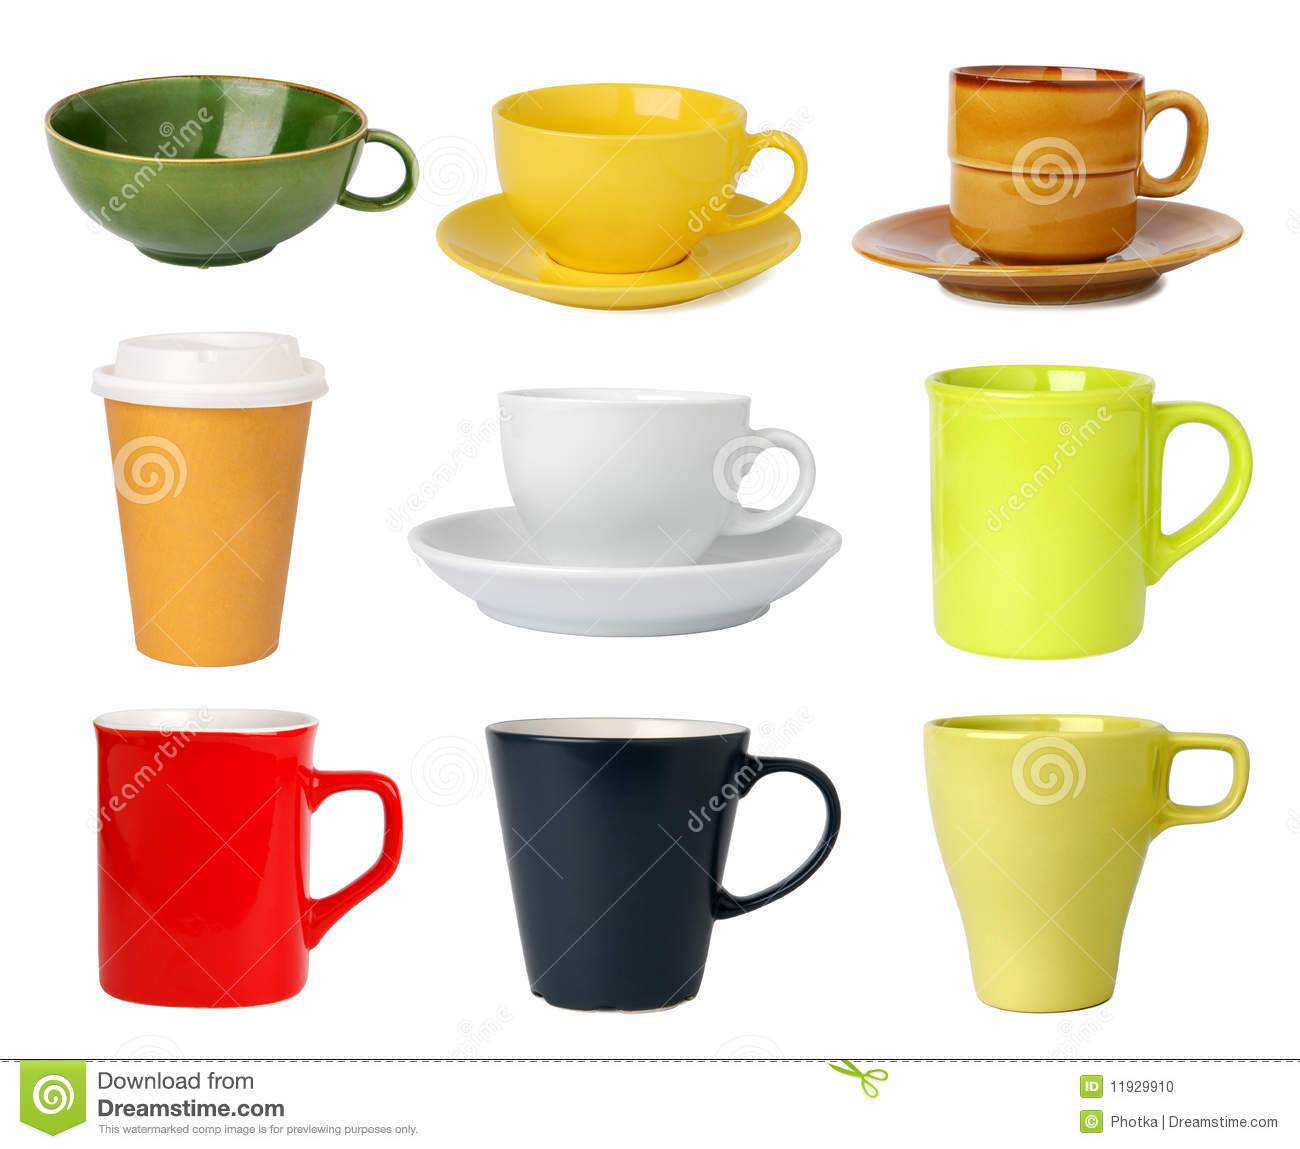 Collection of cups and mugs isolated on white background.